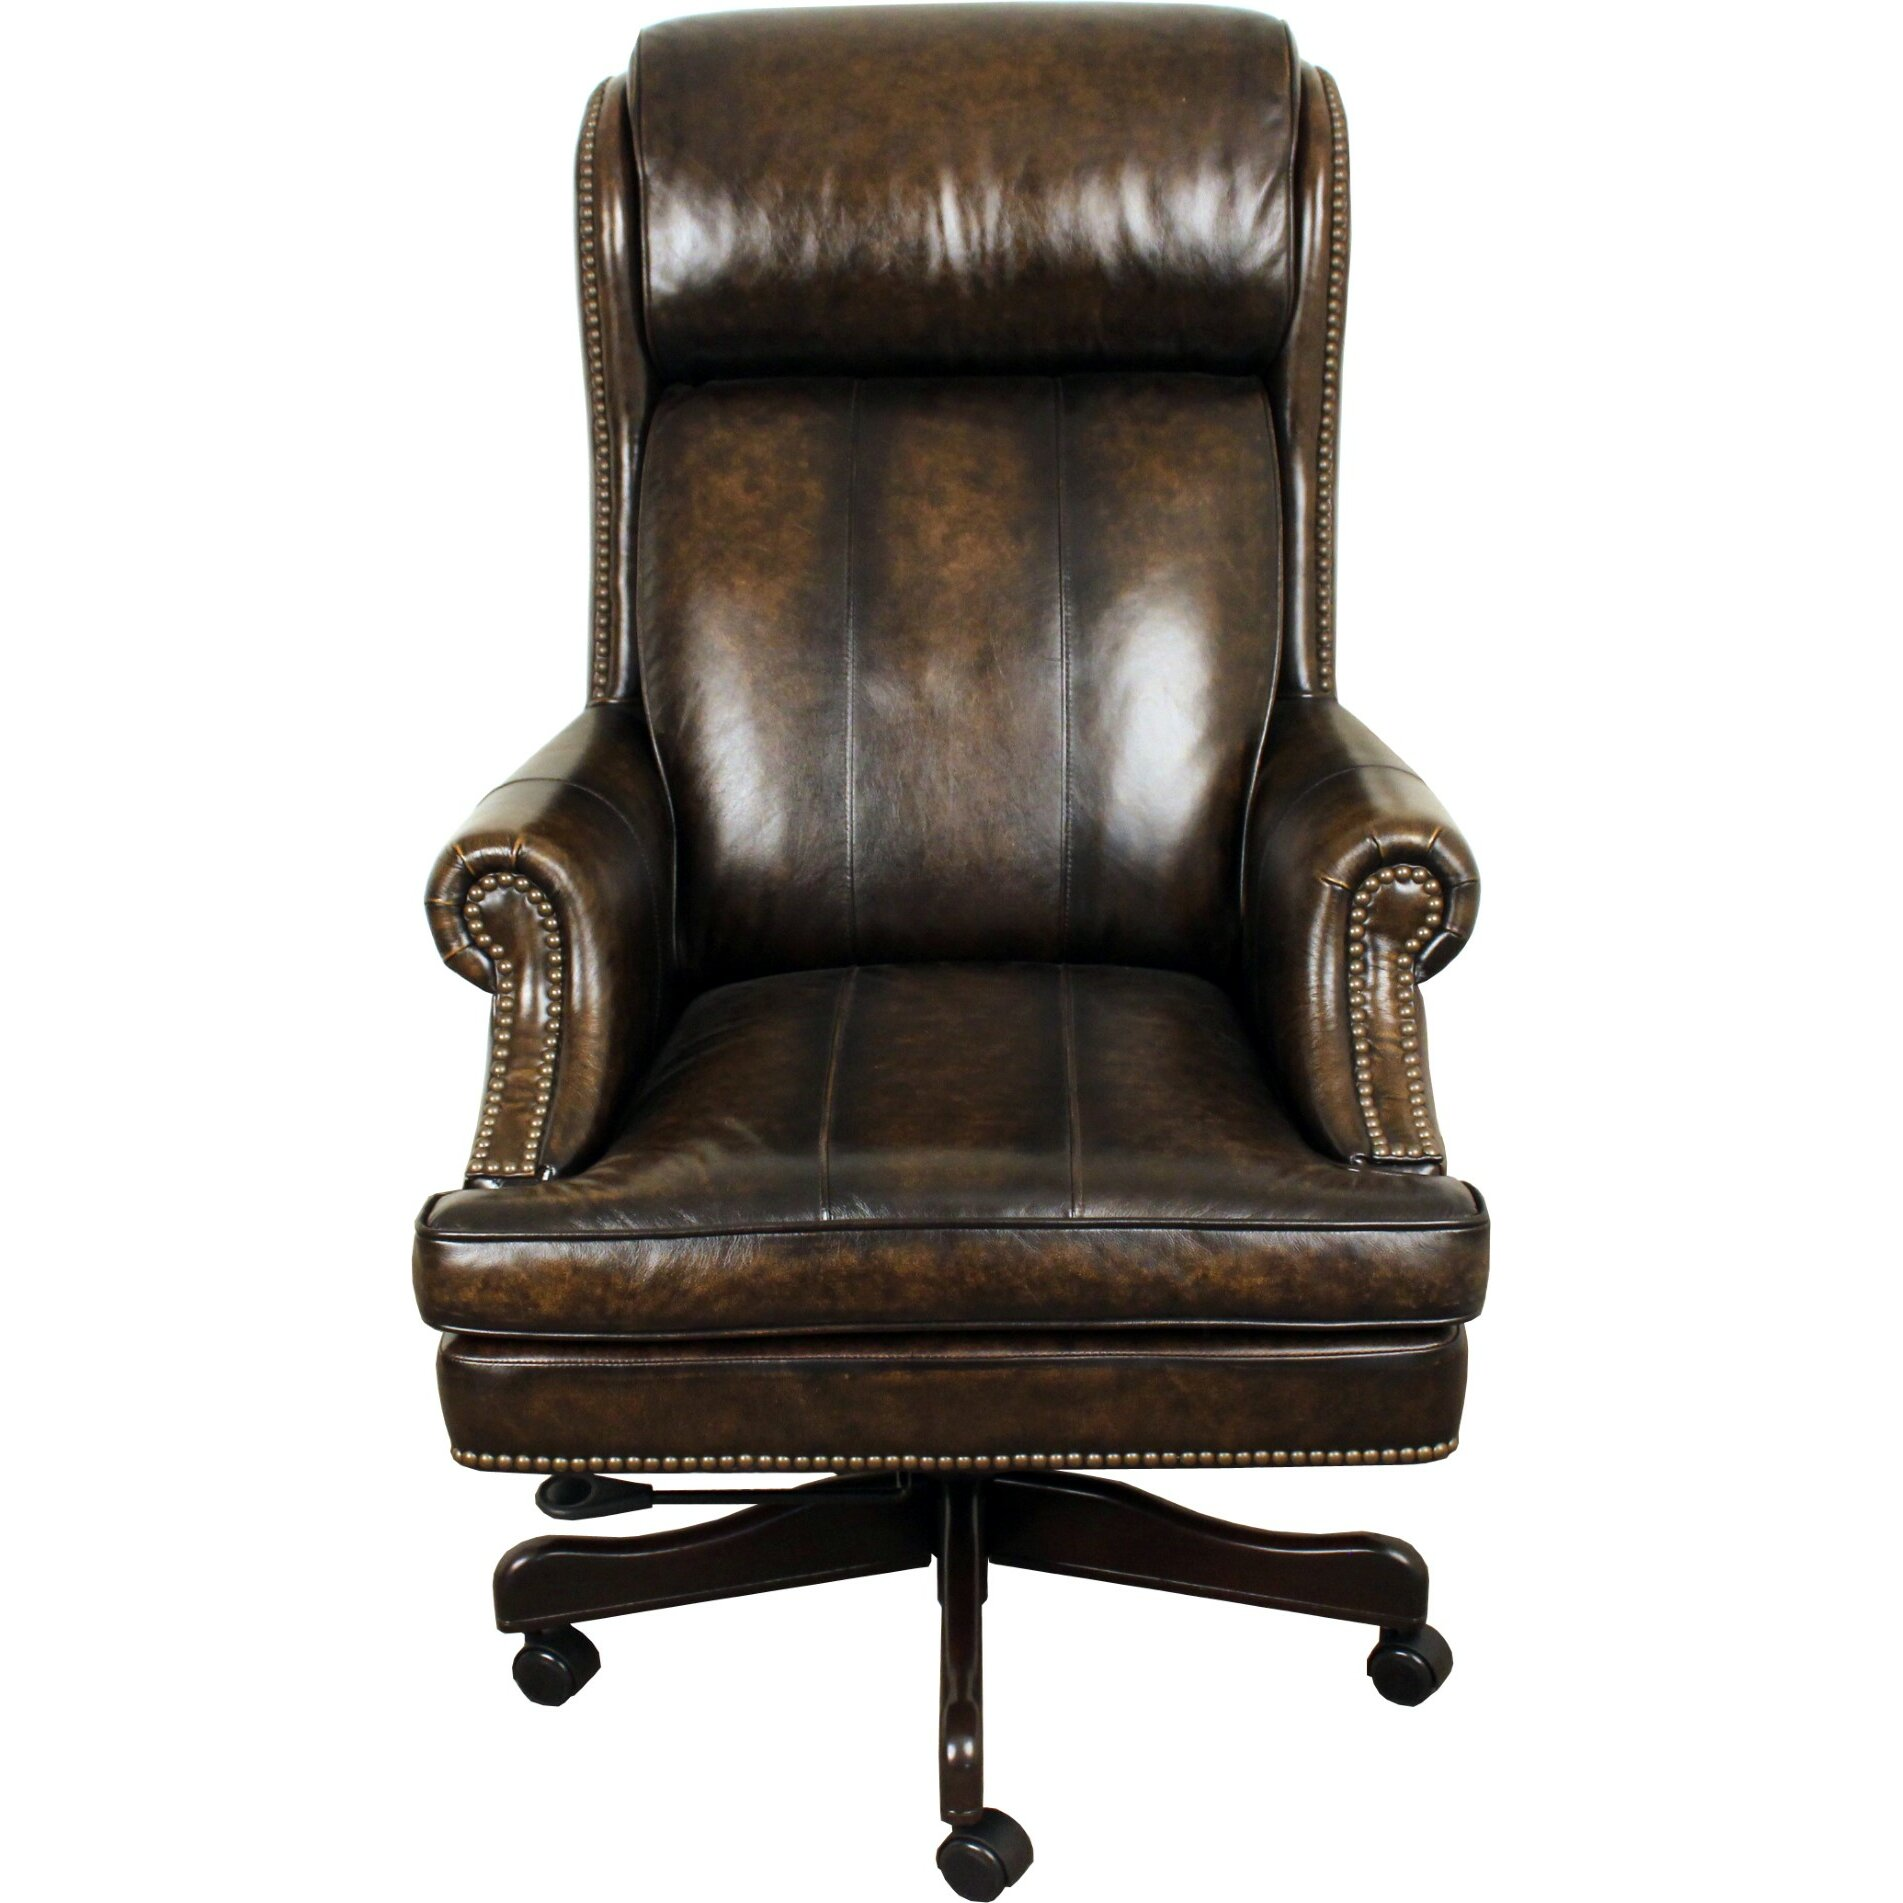 Executive Office Furniture: Lynton High-Back Leather Executive Office Chair